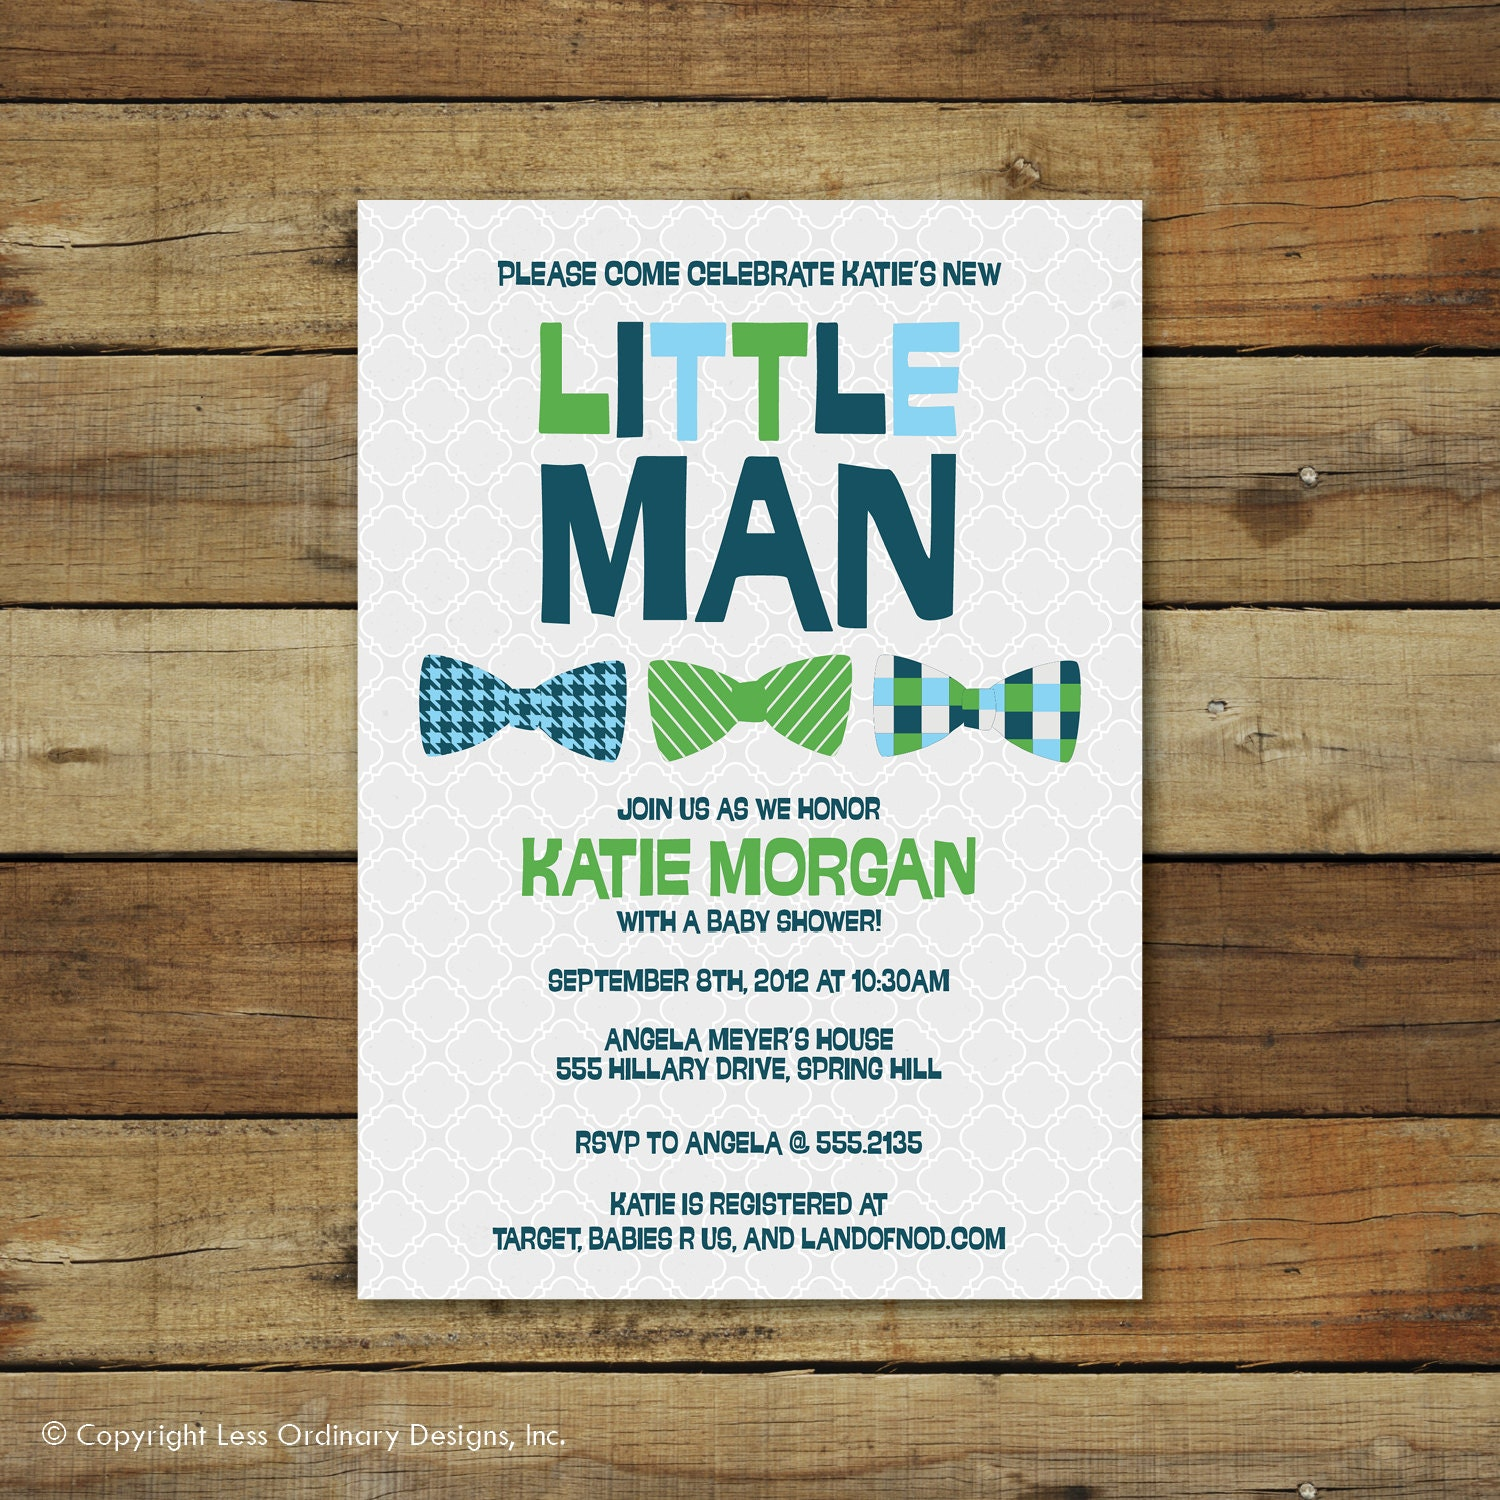 Baby Shower Invitations Wording For Boys: Little Man Baby Shower Invitation Baby Boy By Saralukecreative